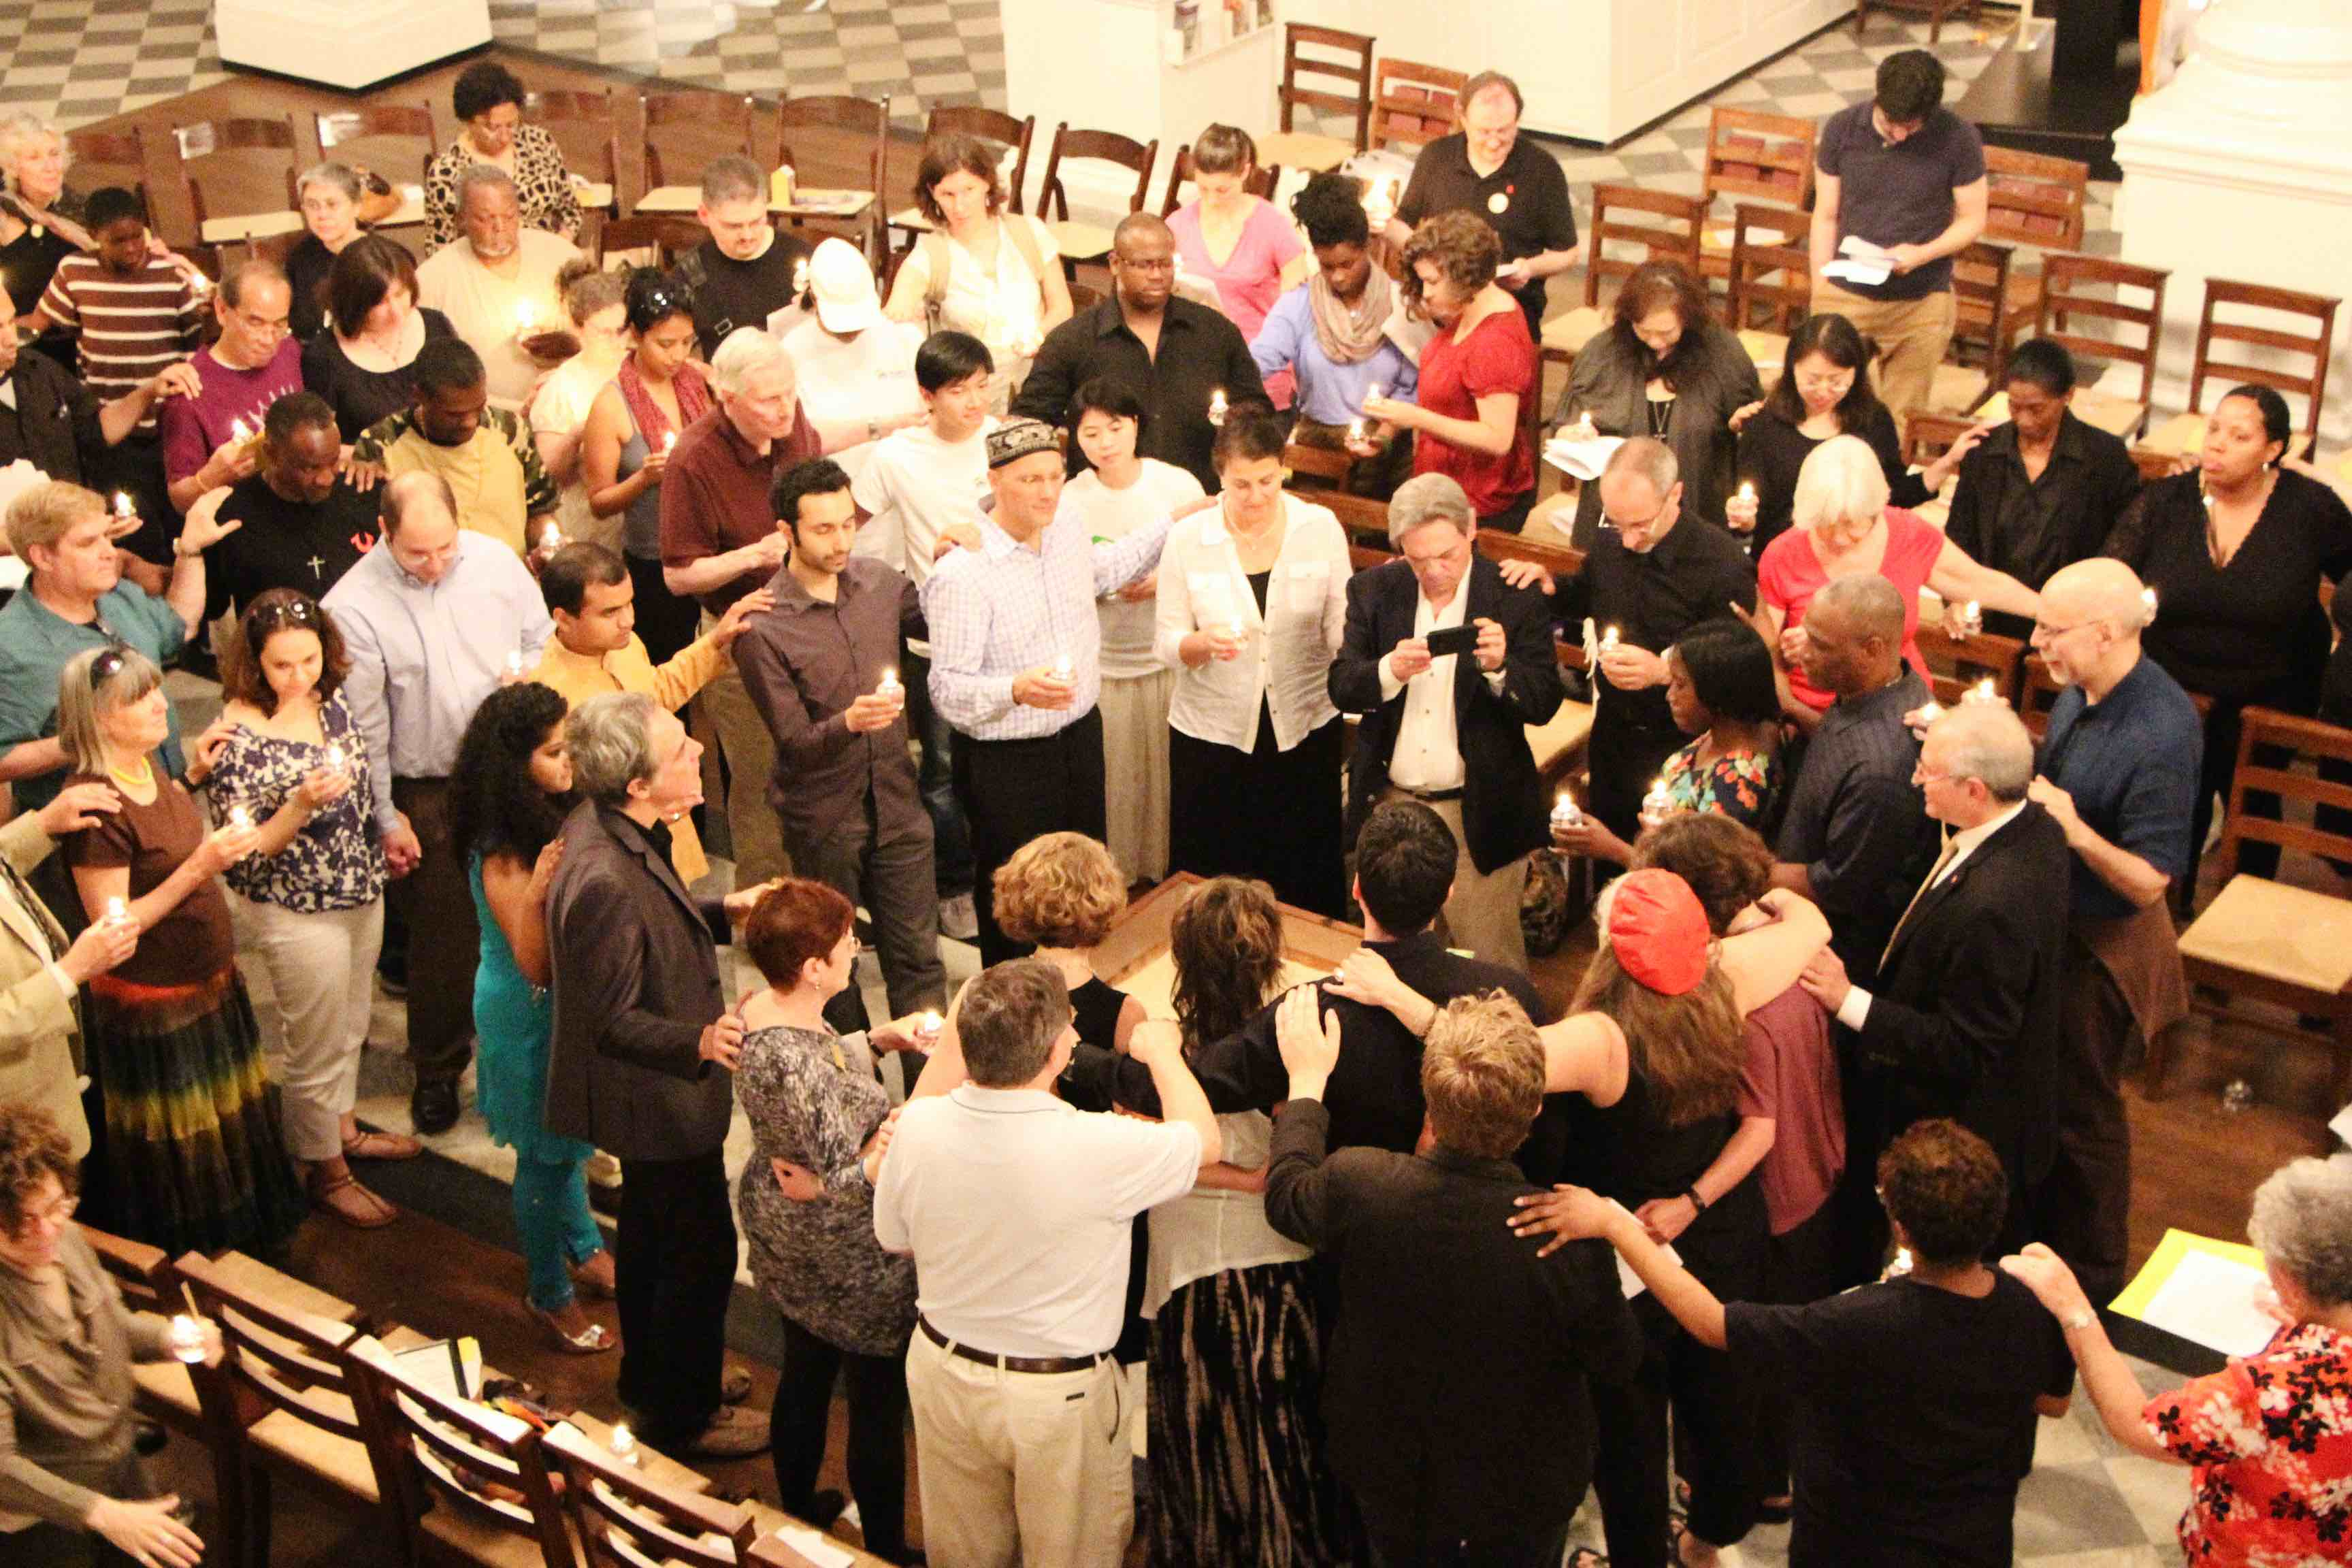 Bricks & Mortals We connect congregations to experts and financial resources so houses of worship can thrive in NYC